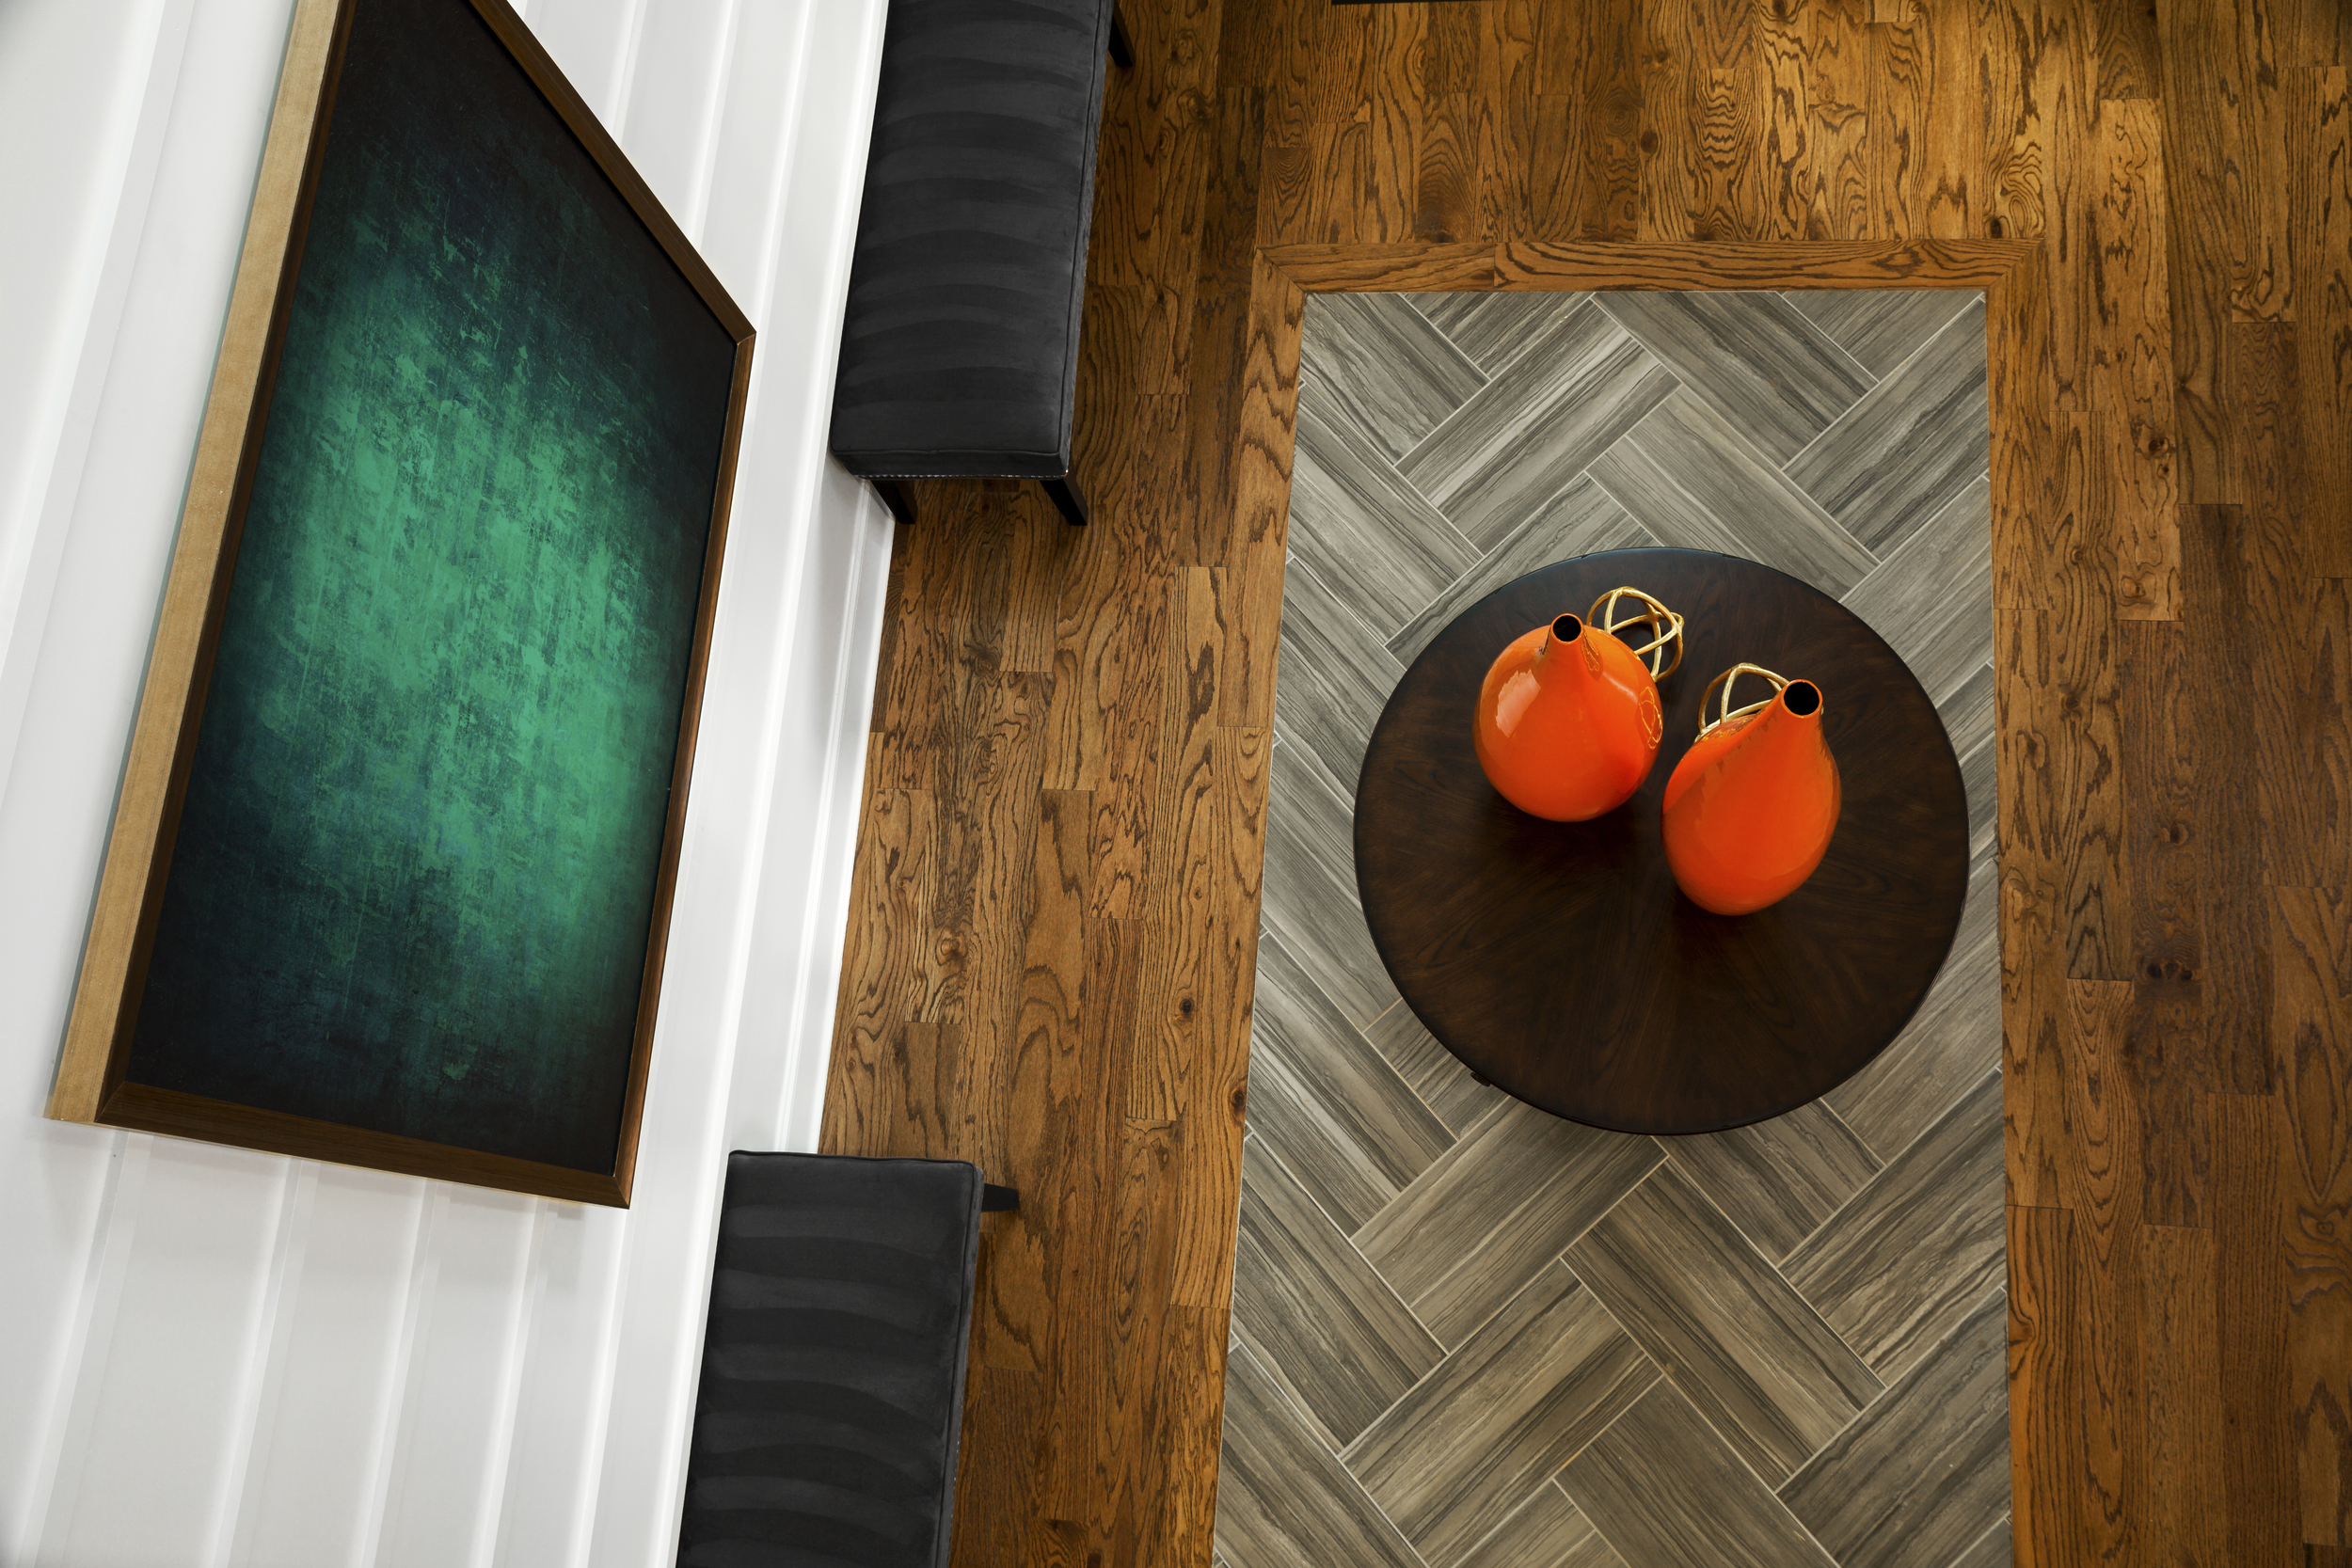 Wood Flooring With Ceramic Inlay Design for The Interior Partners, Atlanta, GA